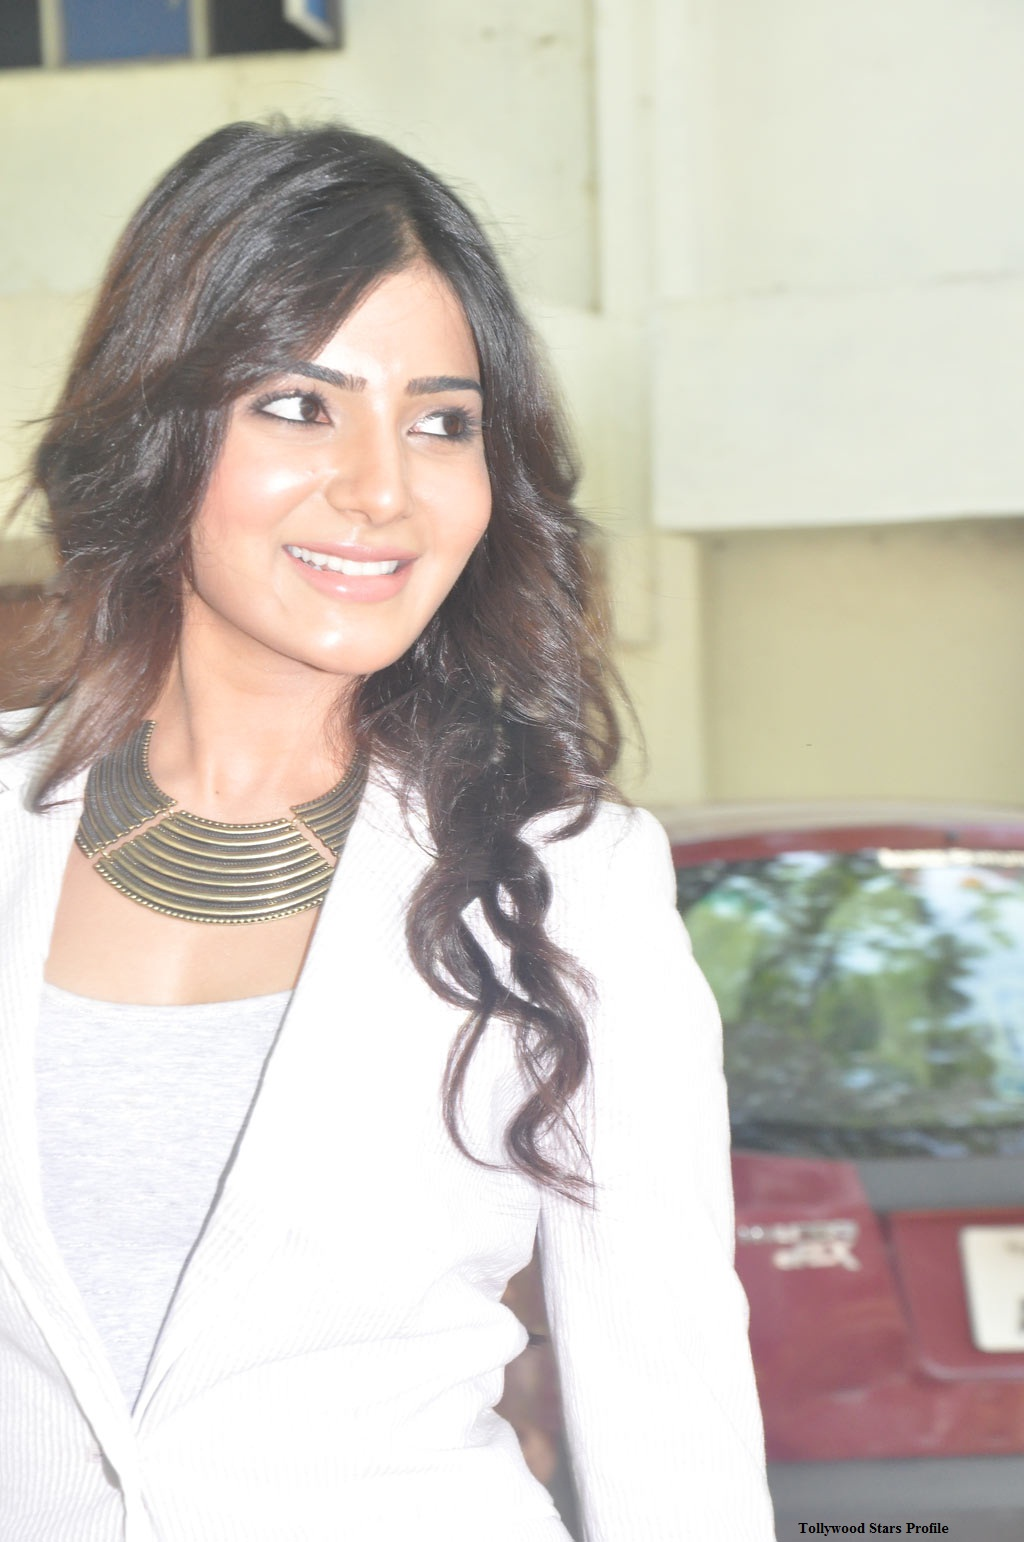 Cute HD Pictures: Samantha Naan Ee Wallpapers